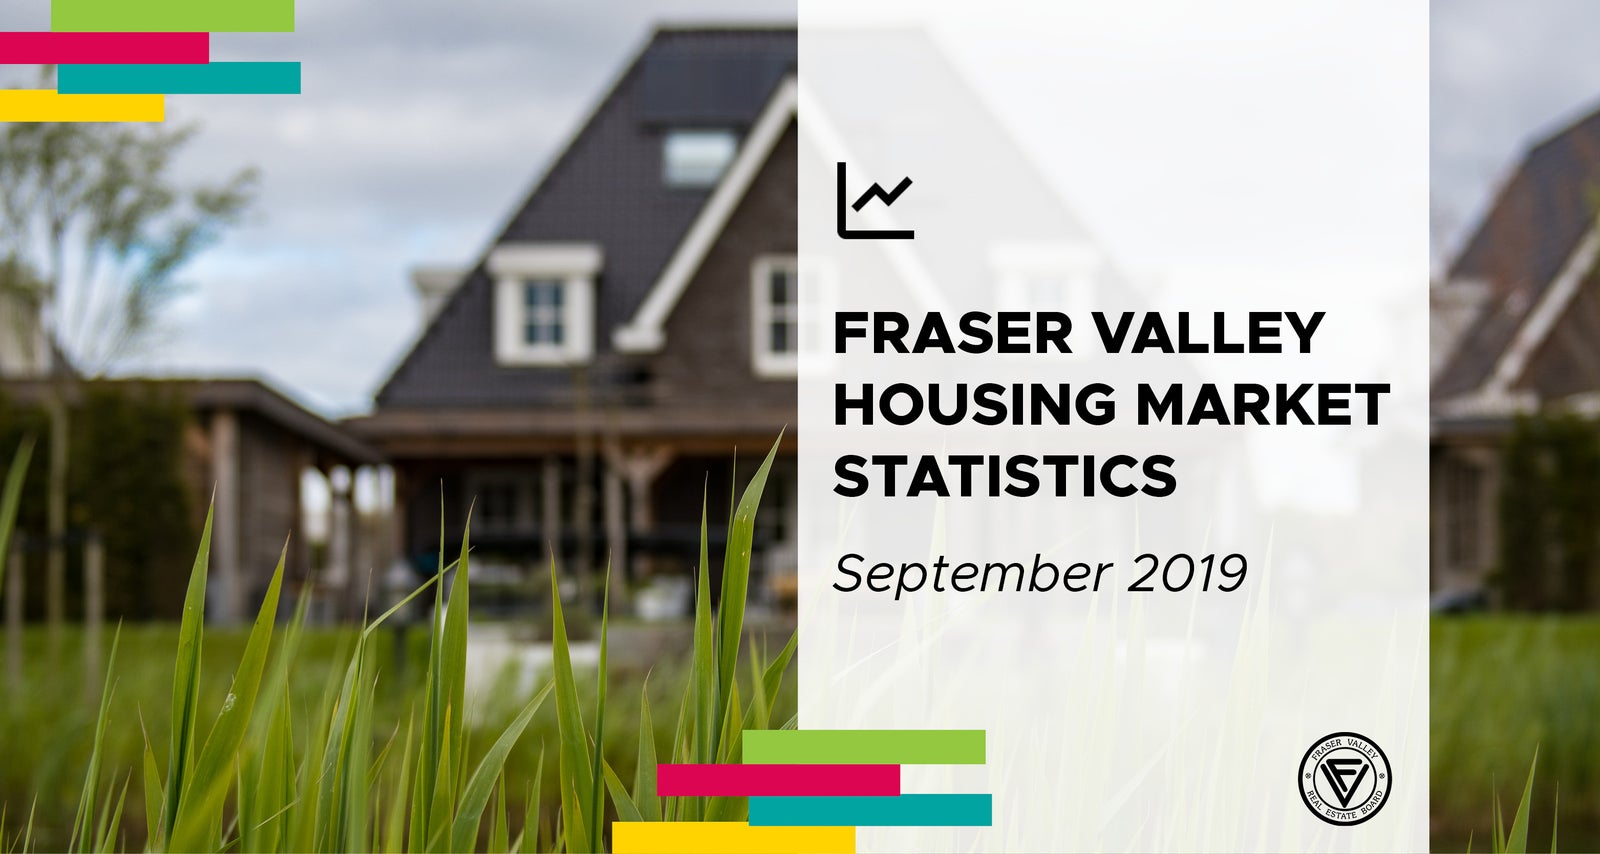 Fraser Valley Housing Market Statistics for September 2019